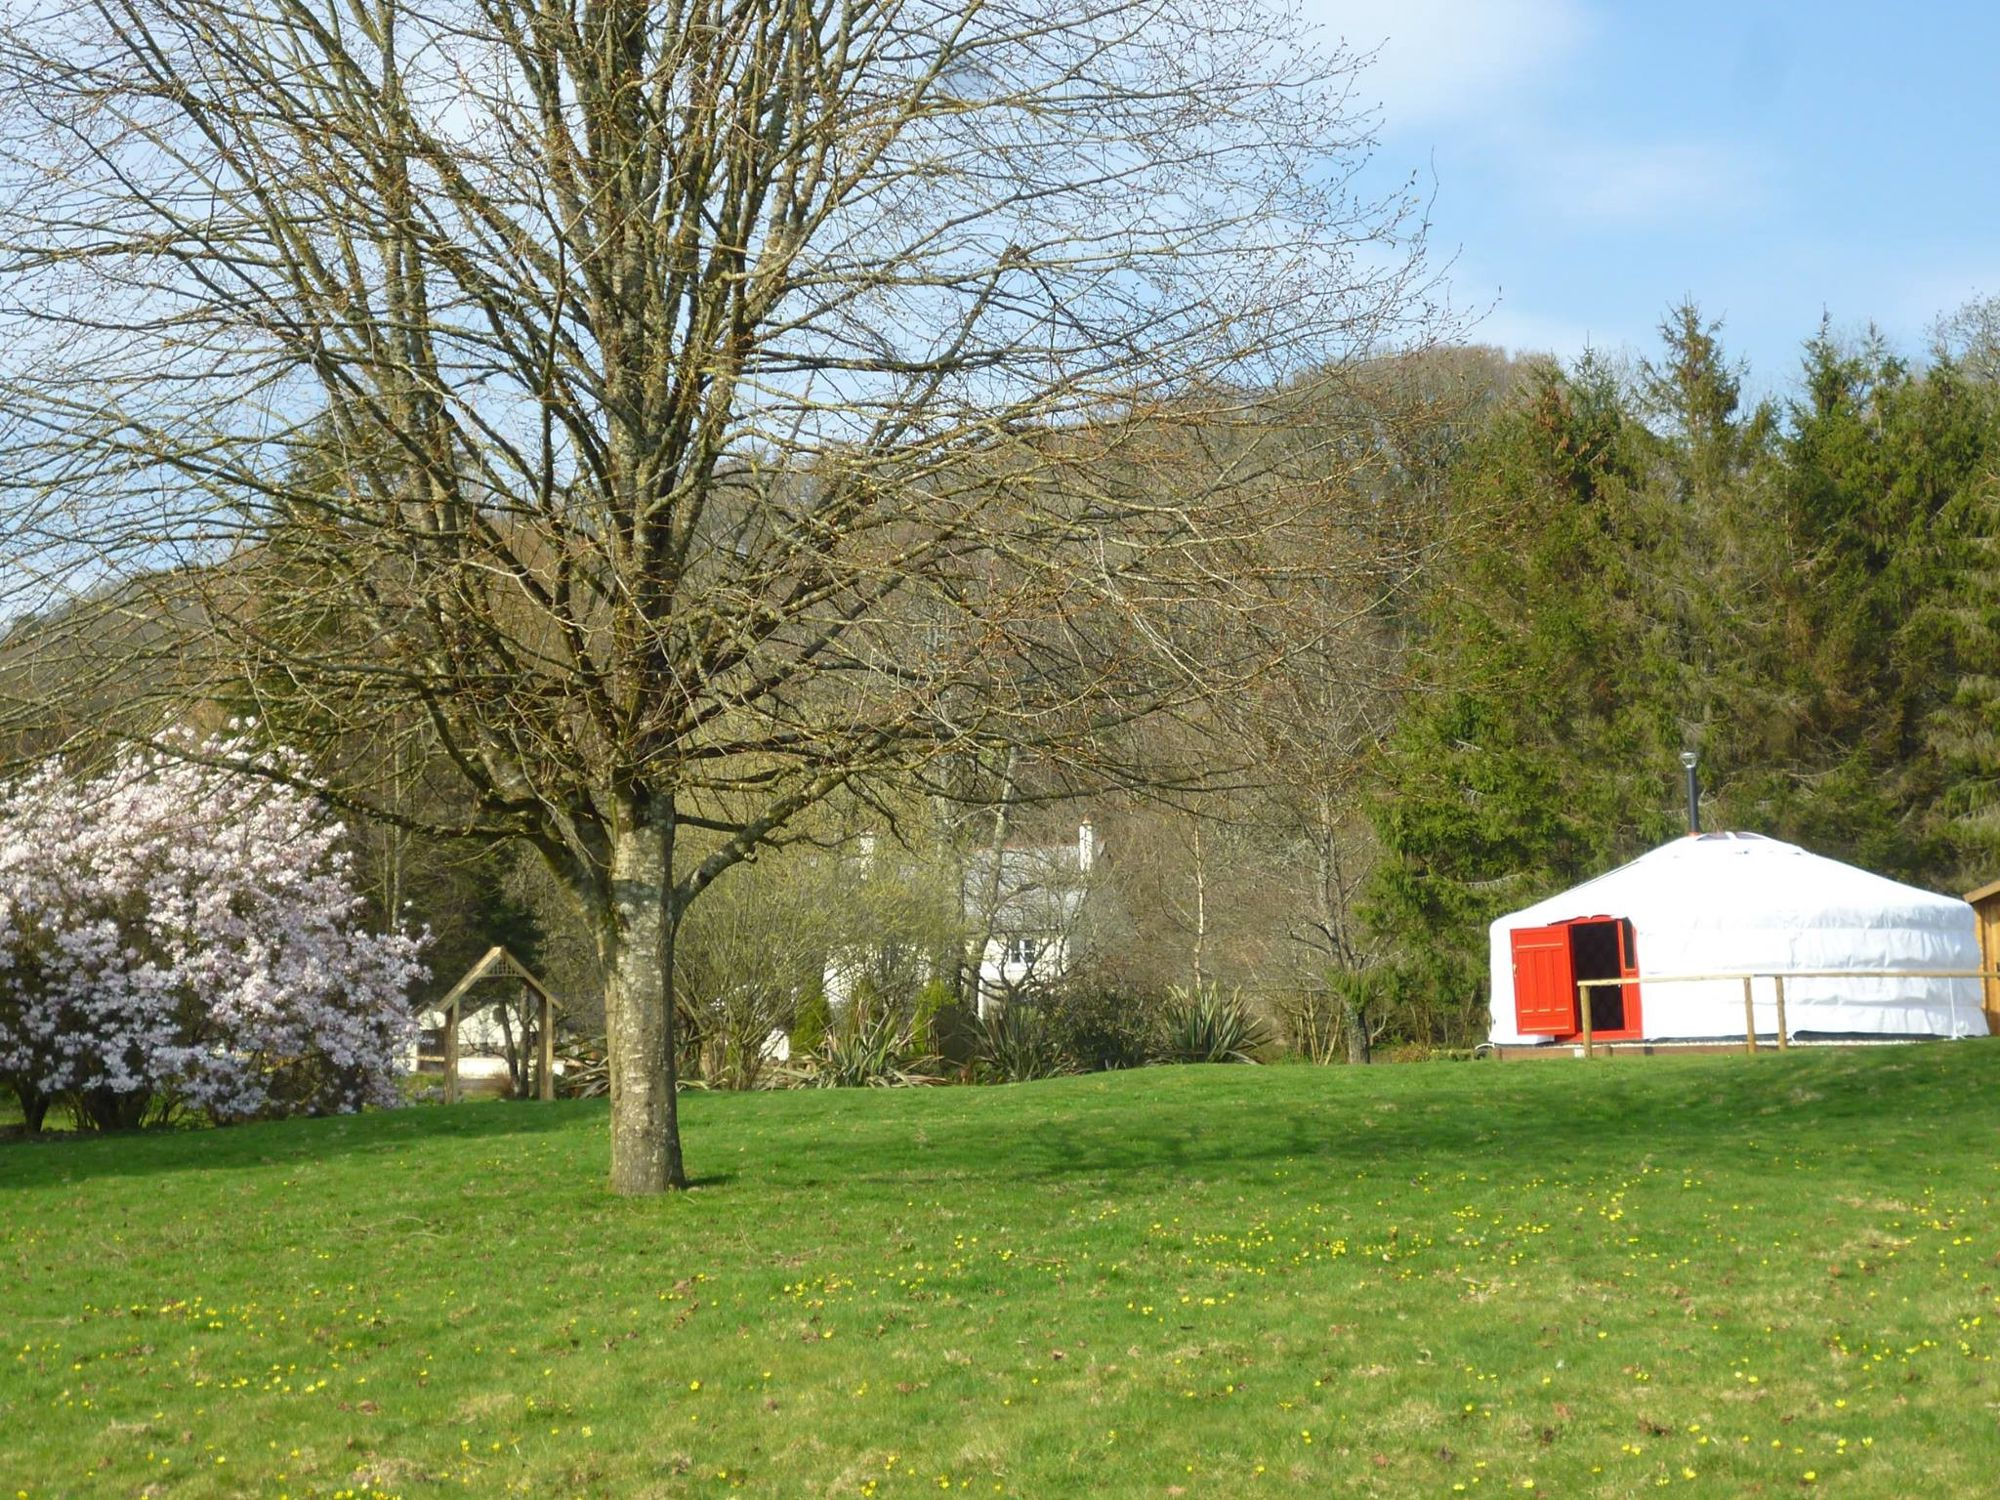 Yurt glamping on picturesque banks of the river Tamar, right on the Devon Cornwall border.